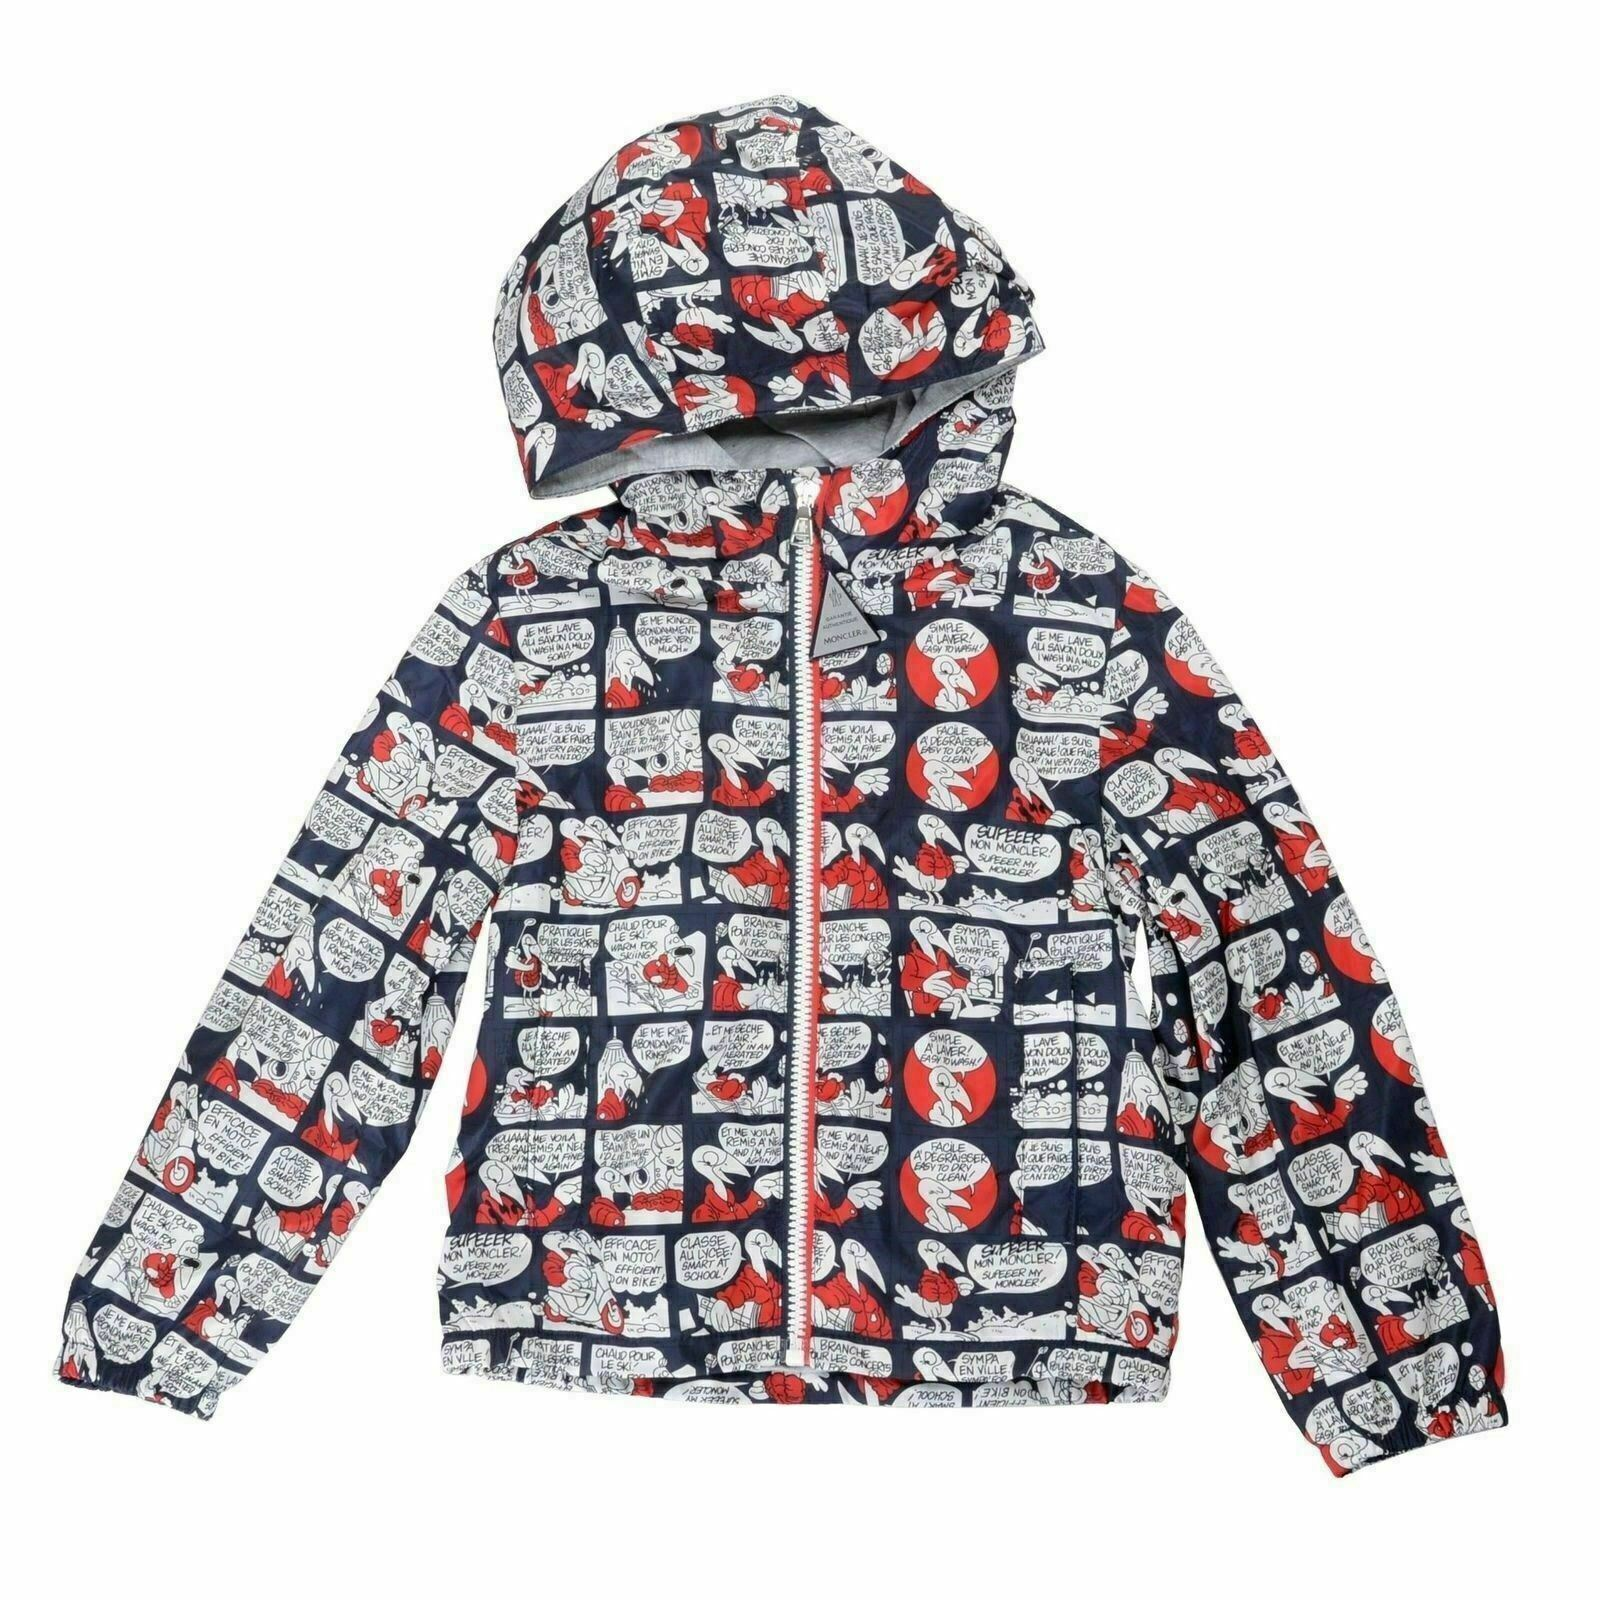 Details about Moncler Kids's NEW_URVILLE_IMP Hooded Windbreaker Jacket Moncler 6A US 6 Years